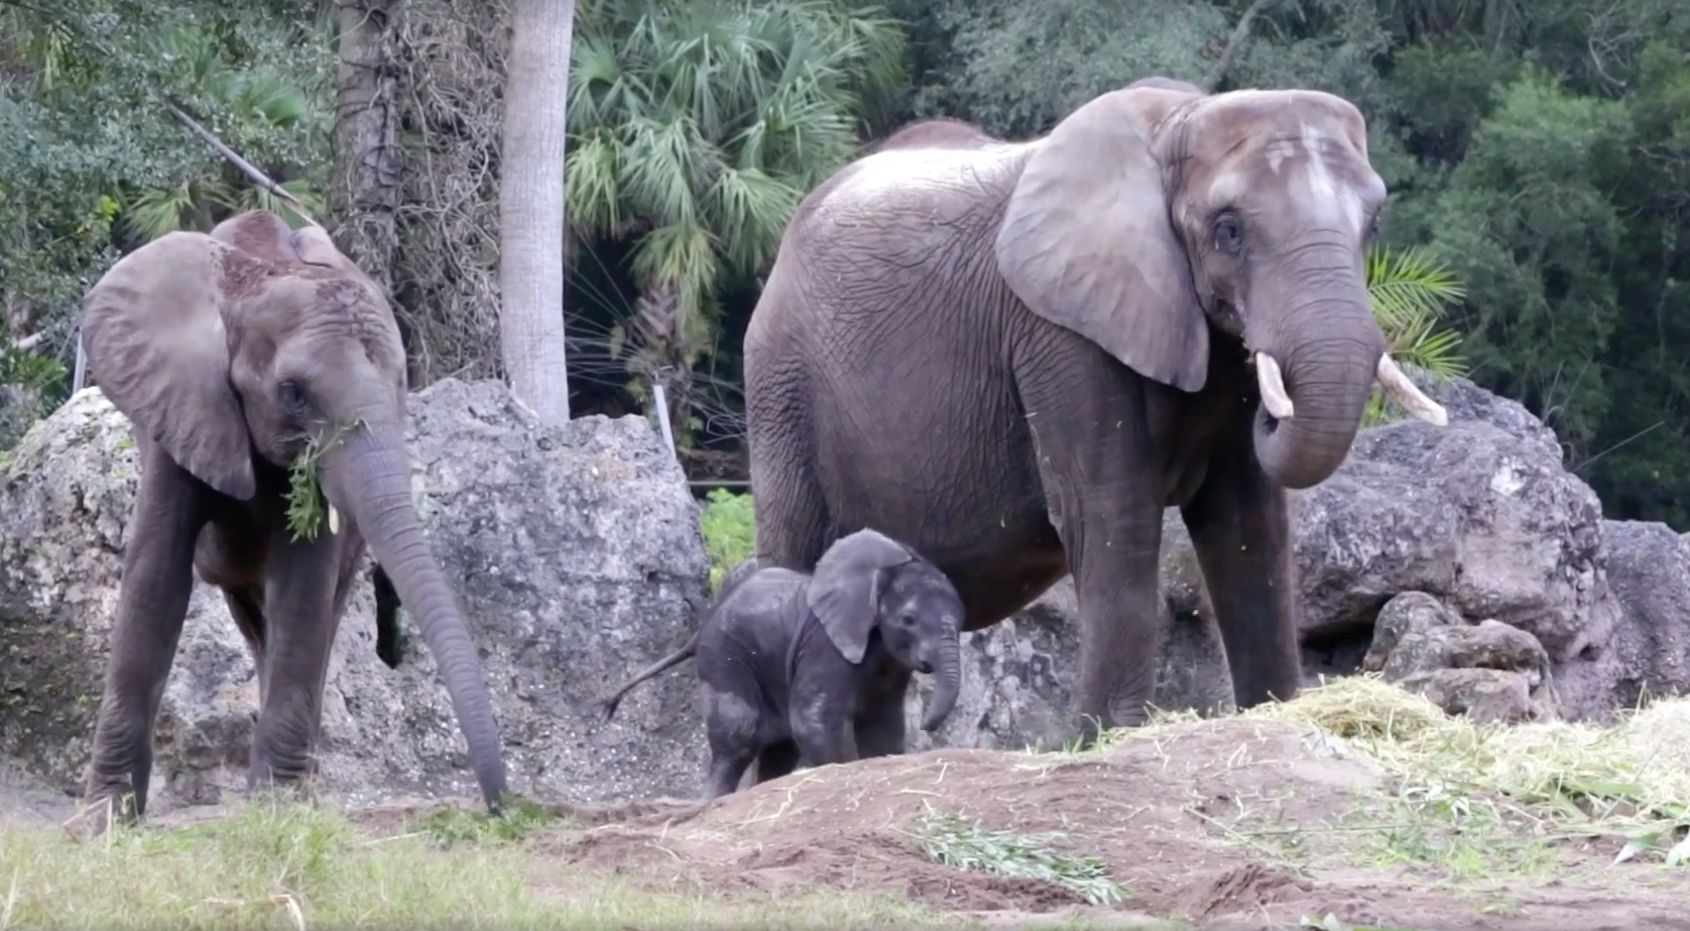 Baby Stella is seen exploring her new home alongside her mother and sister.